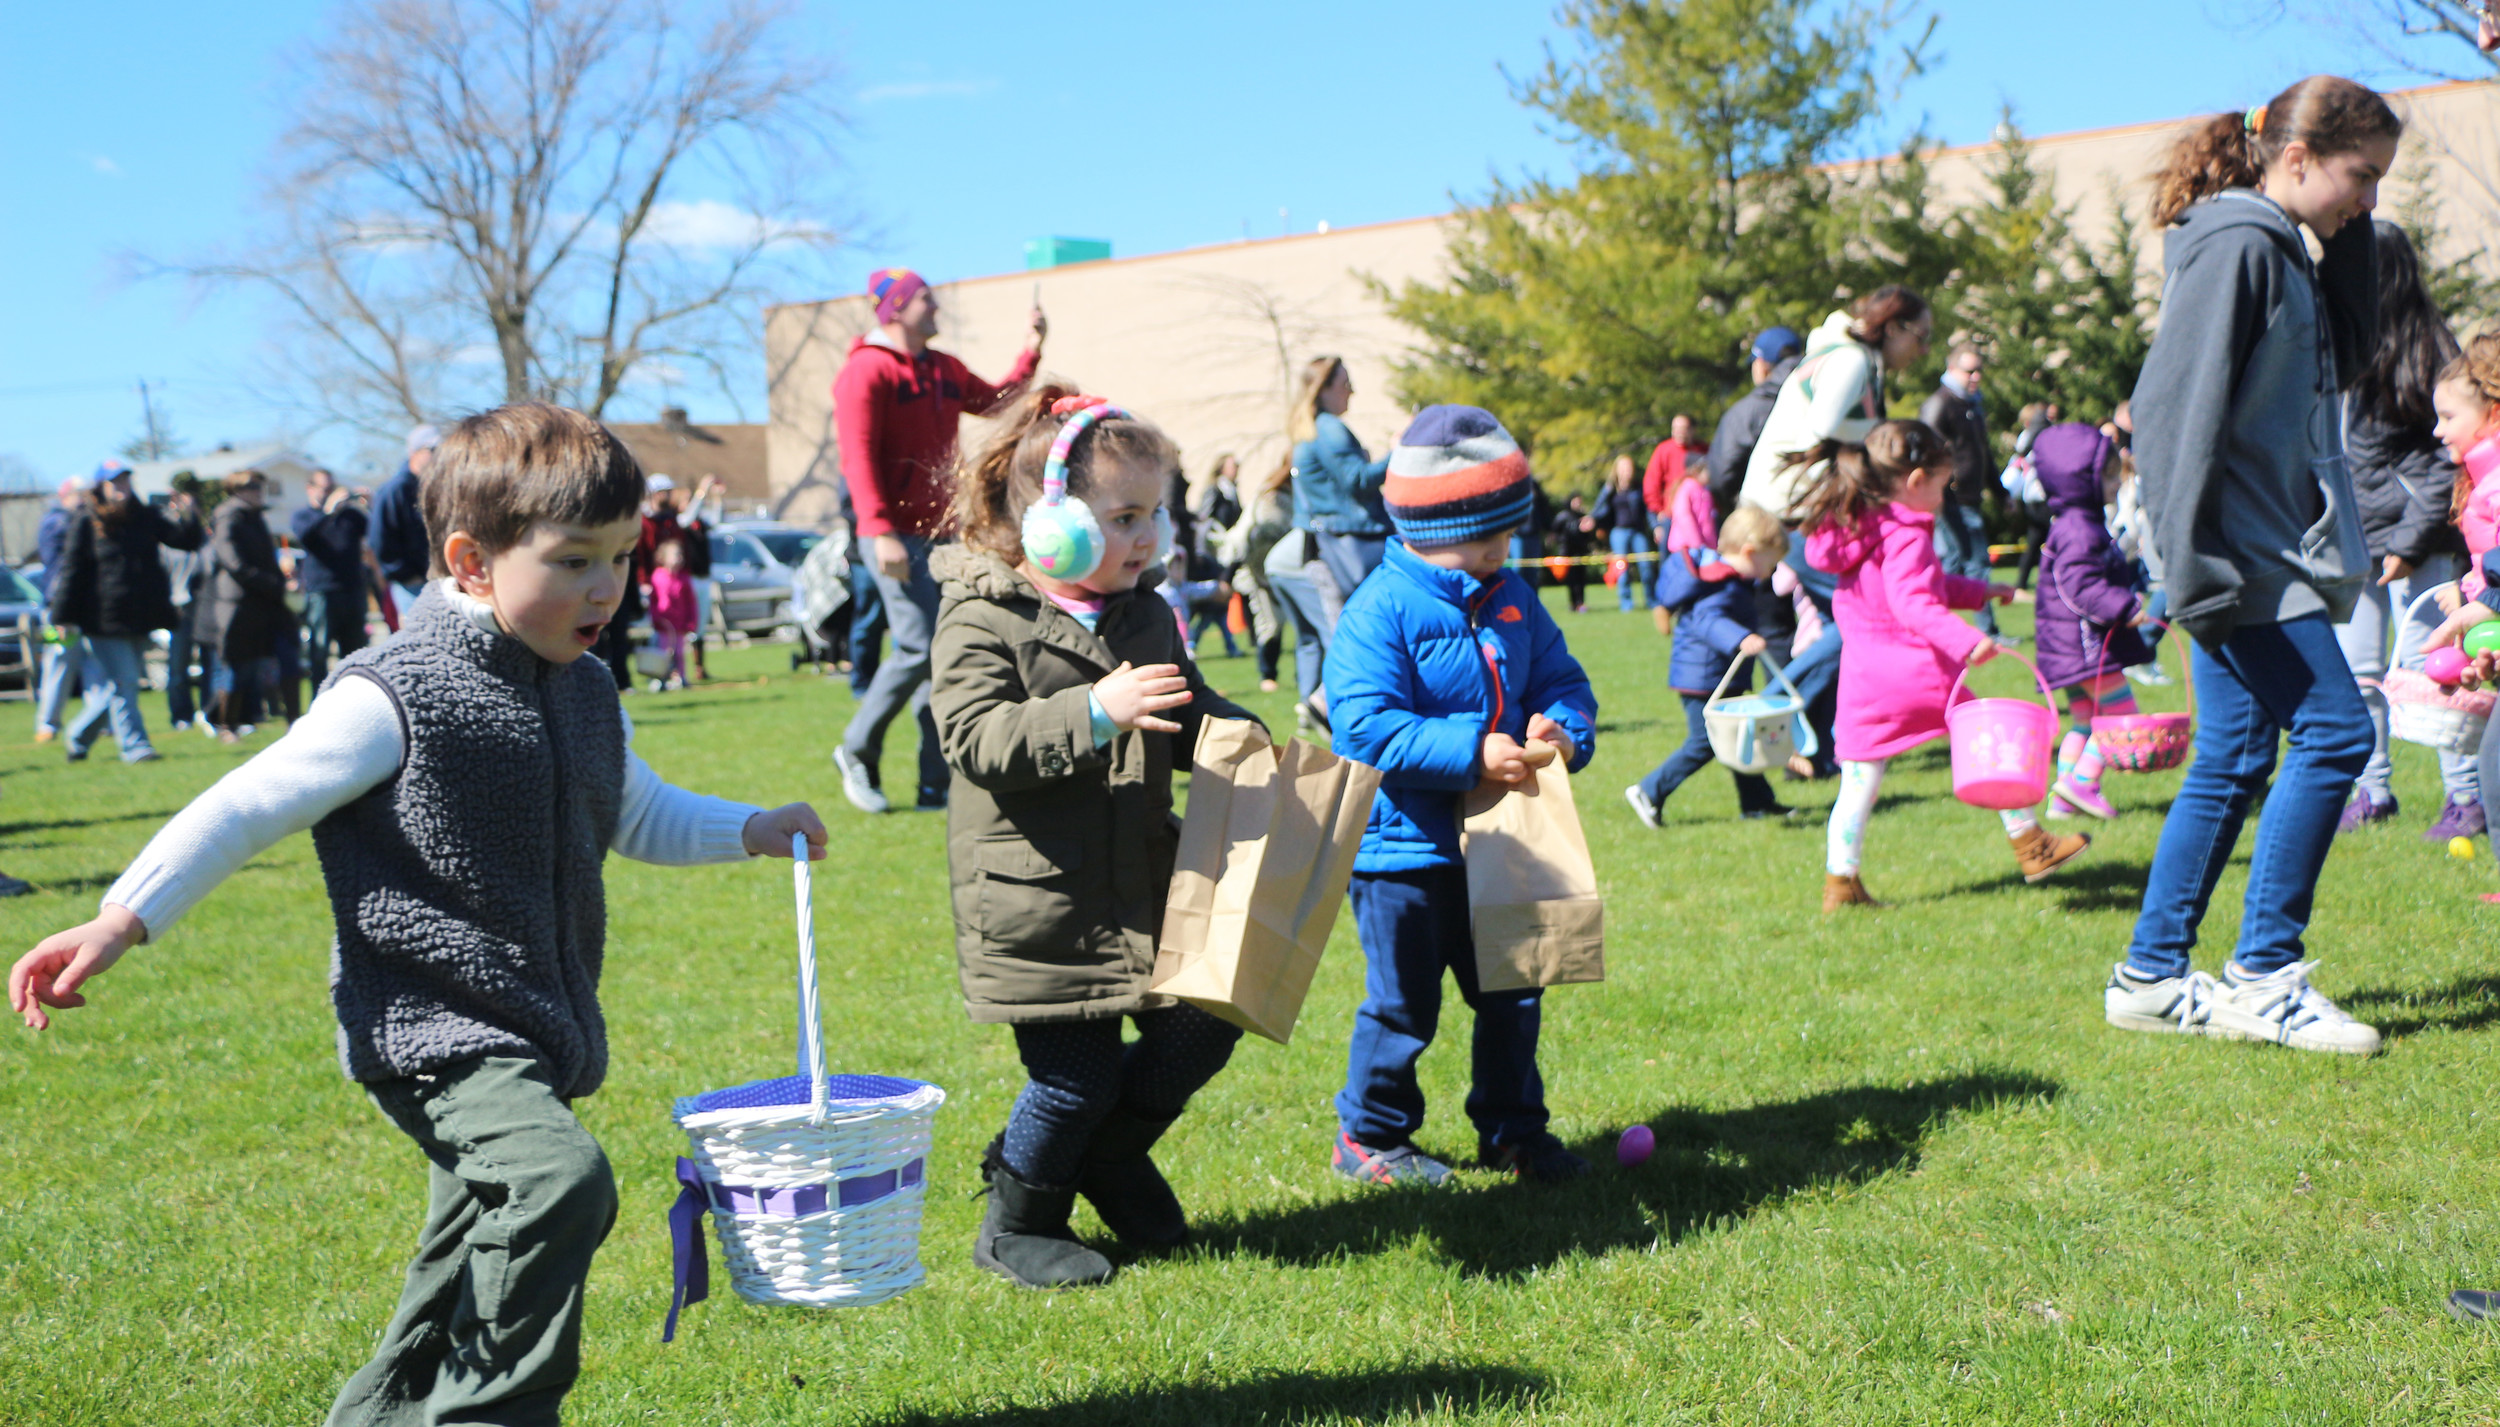 Children raced across the Schoolhouse Green in Oceanside during their annual hunt for Easter eggs last Saturday.